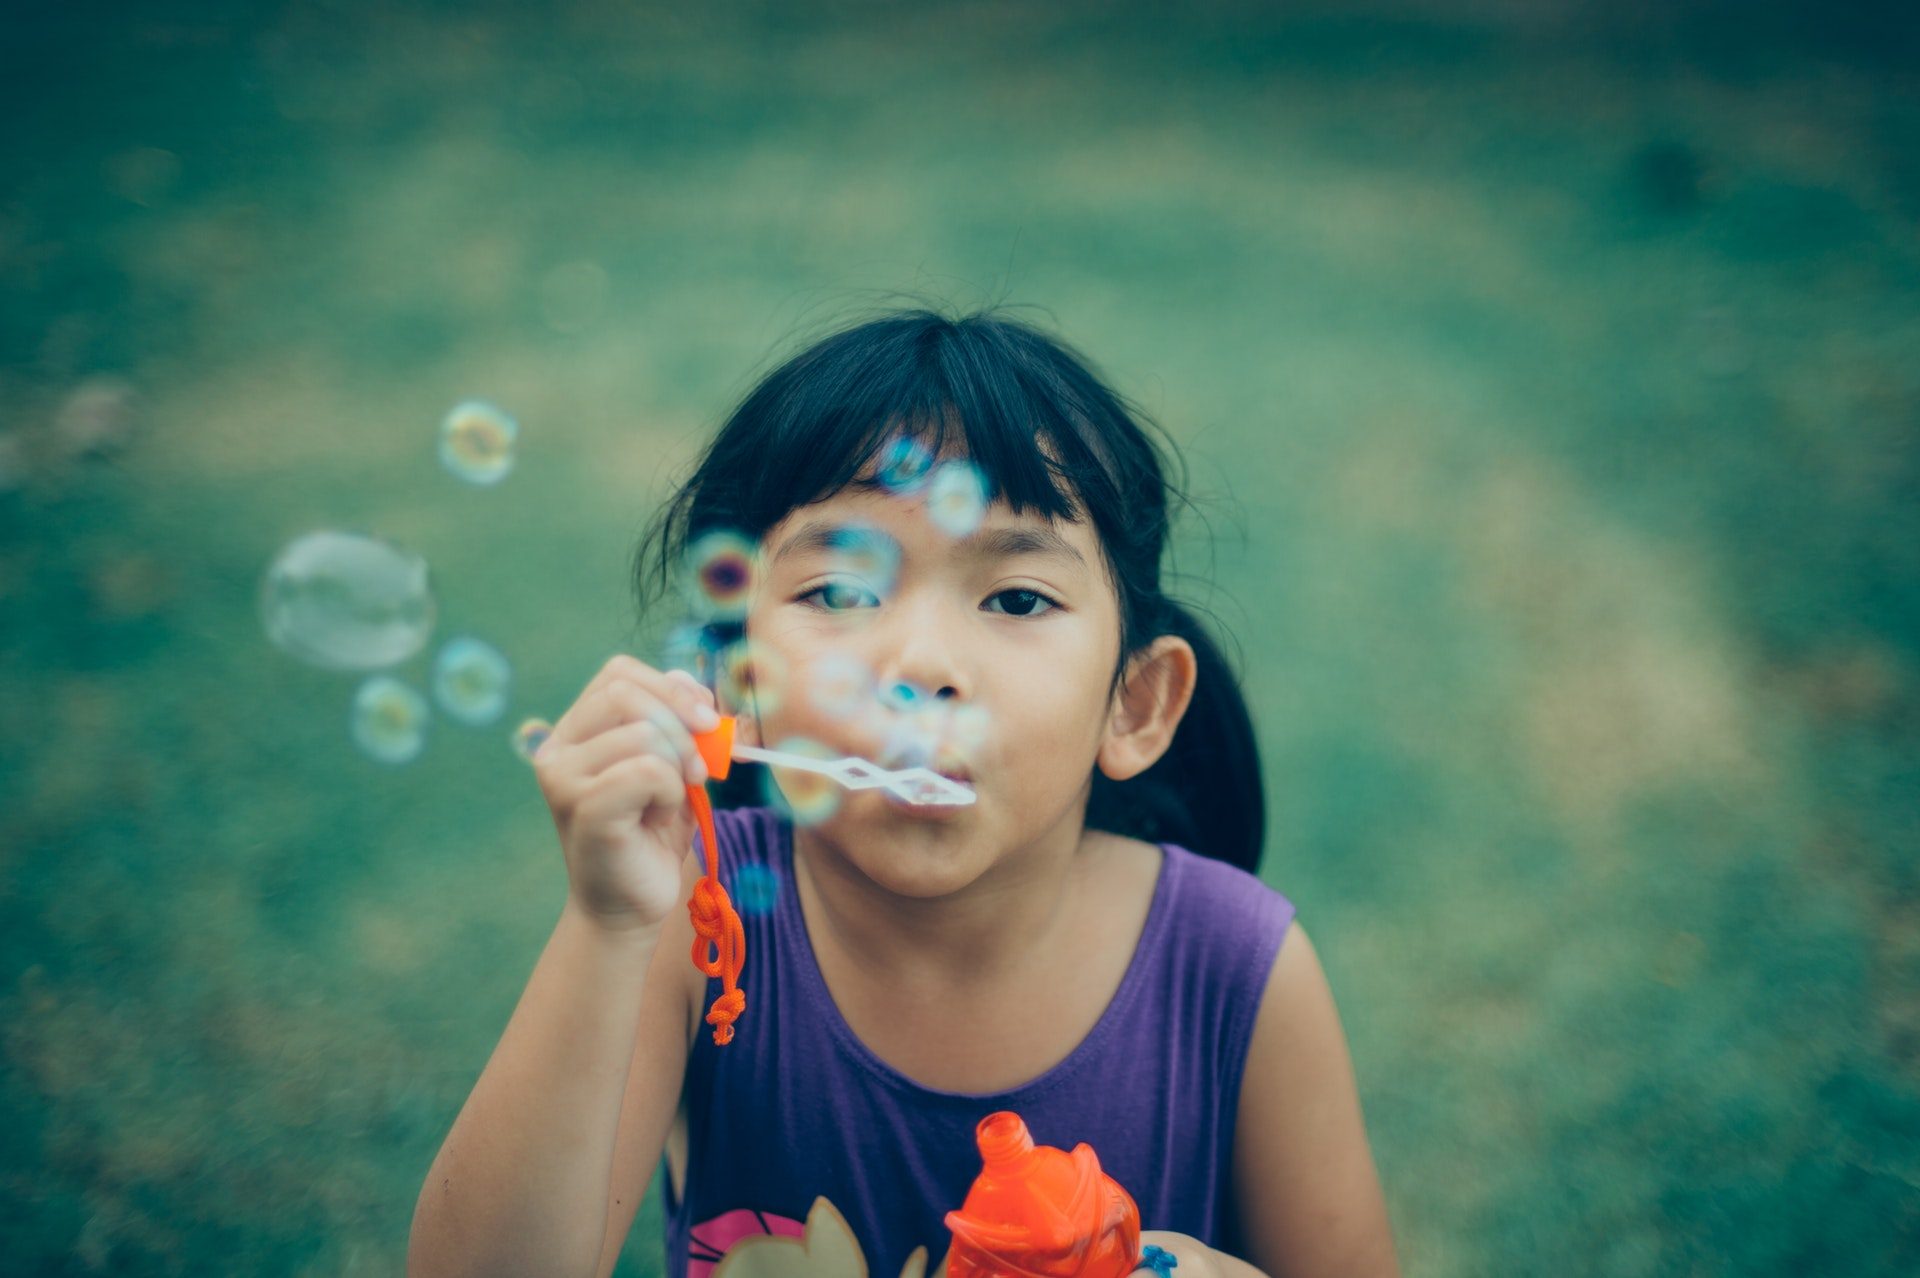 an image of a girl blowing bubbles.